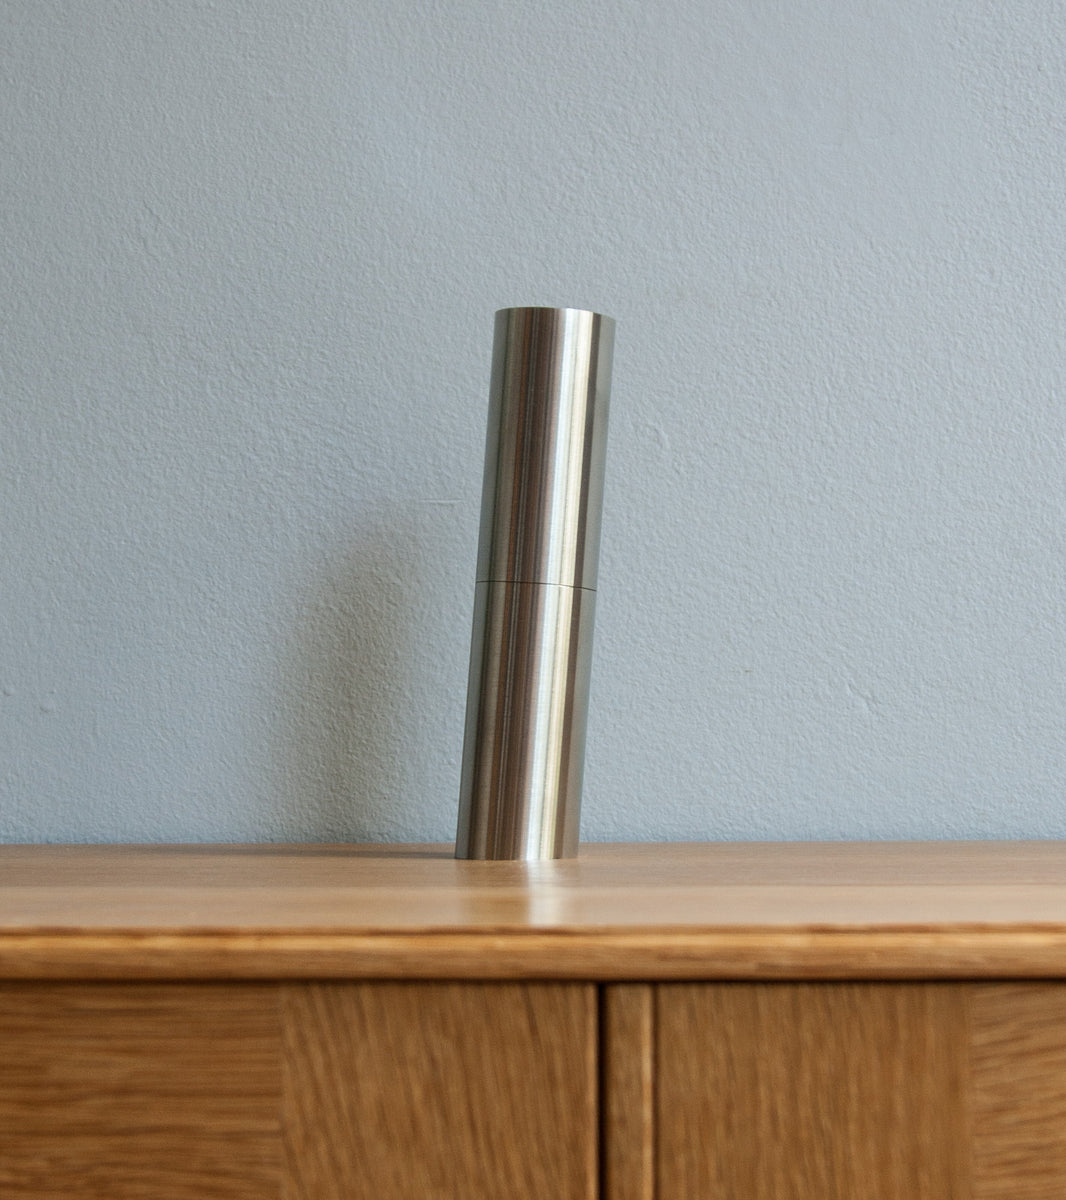 Italic Mill - Matt Nickel Plated Michael Anastassiades & Carl Auböck - Image 3